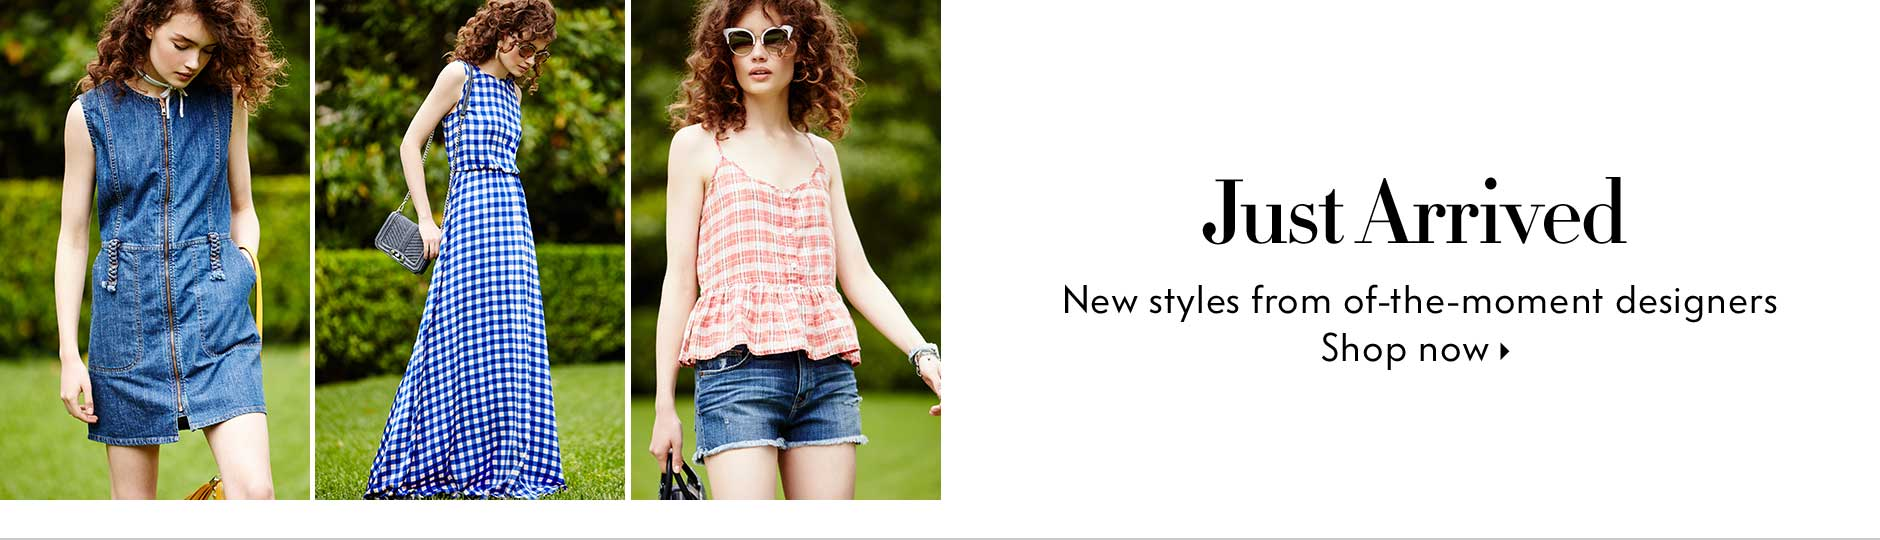 Just Arrived - New styles from of-the-moment designers